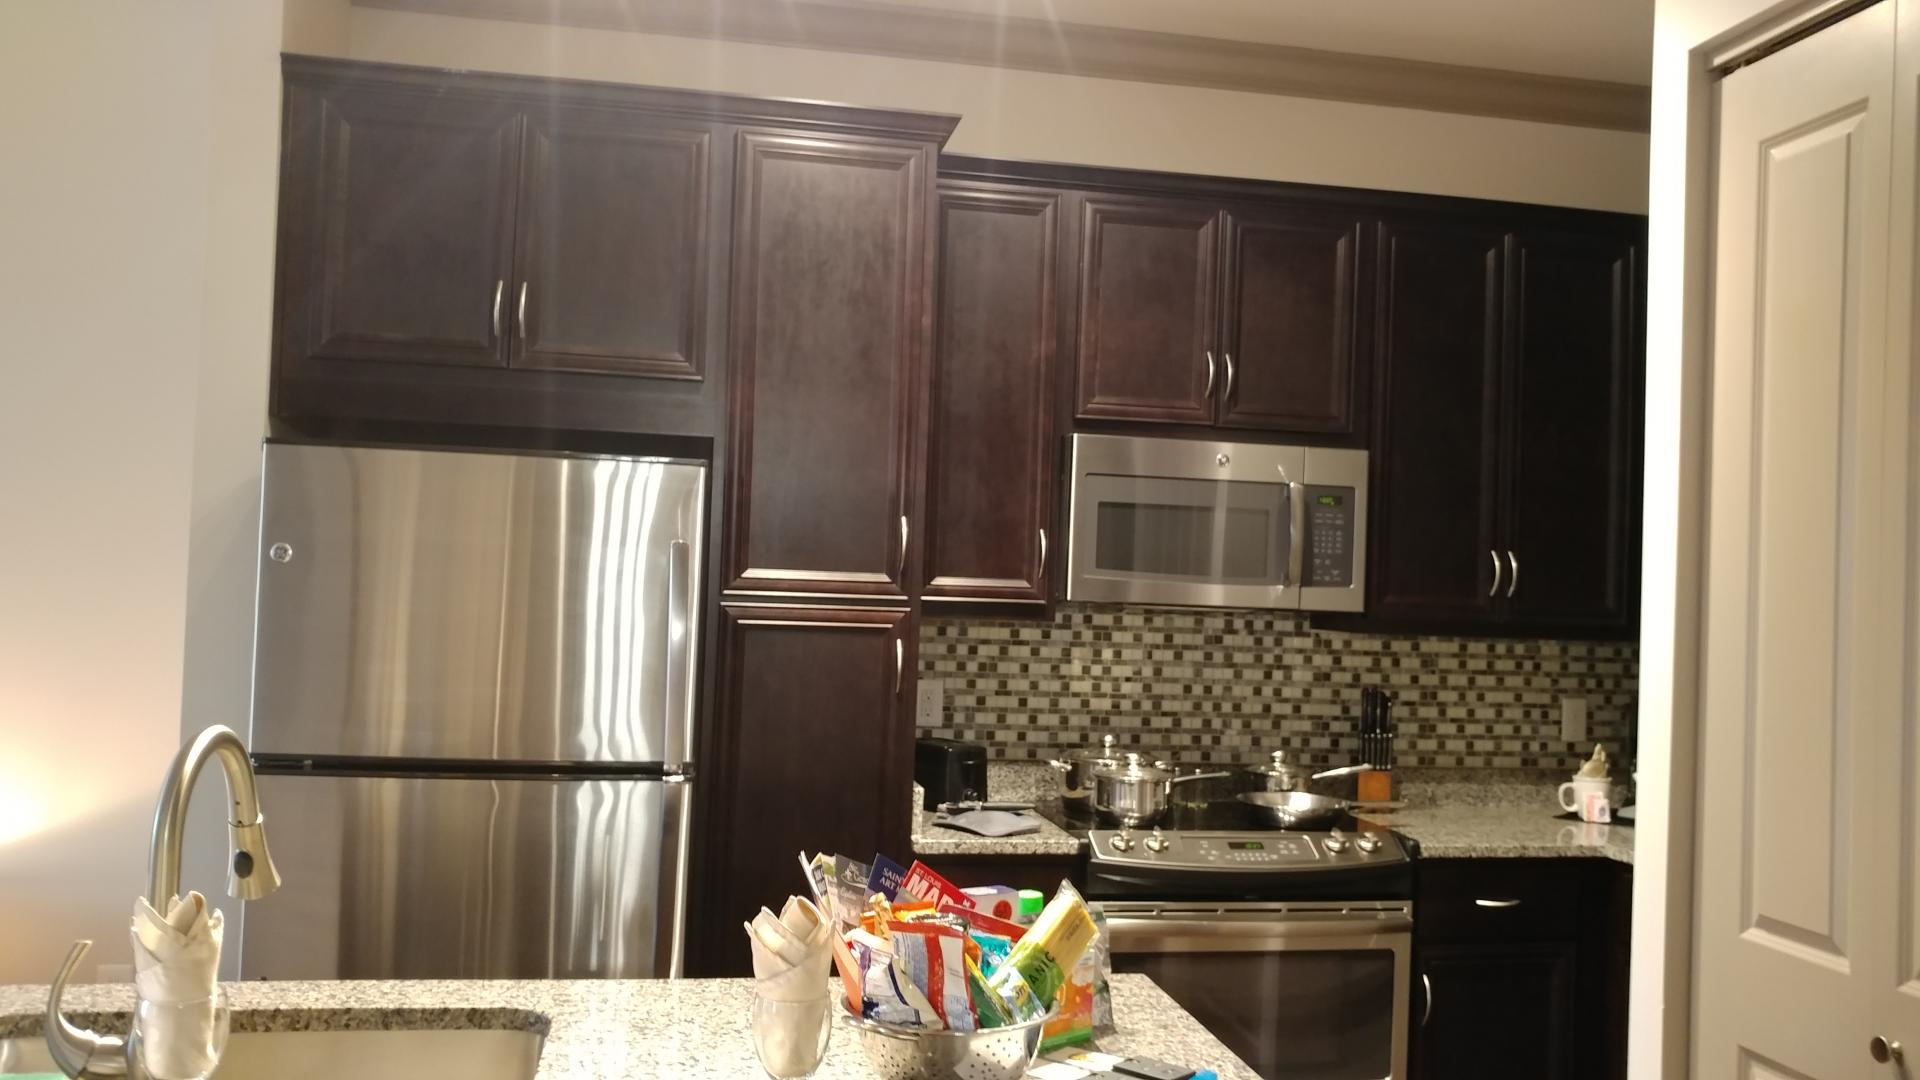 Kitchen at The Orion Apartments